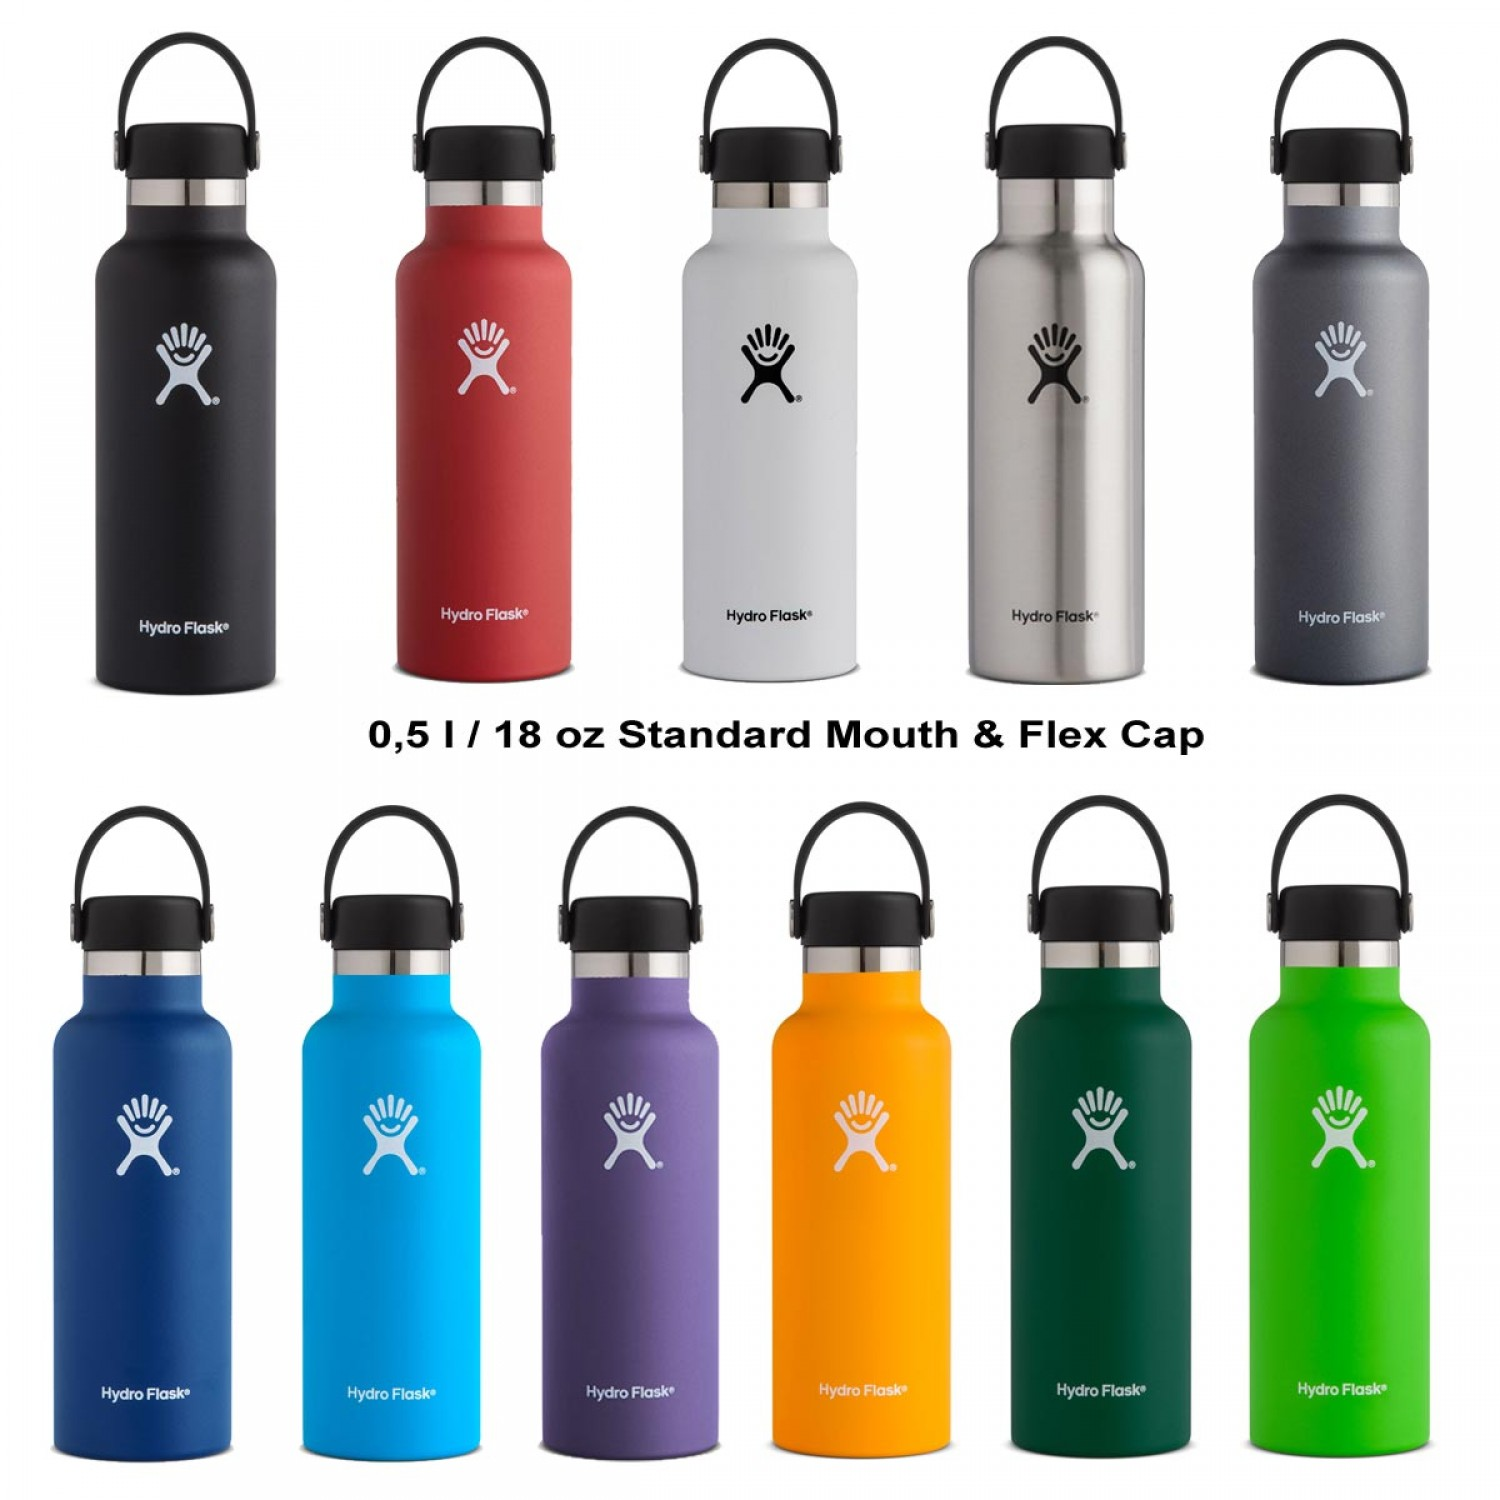 Hydro Flask Insulated Bottle 18oz Standard Mouth & Flex Cap